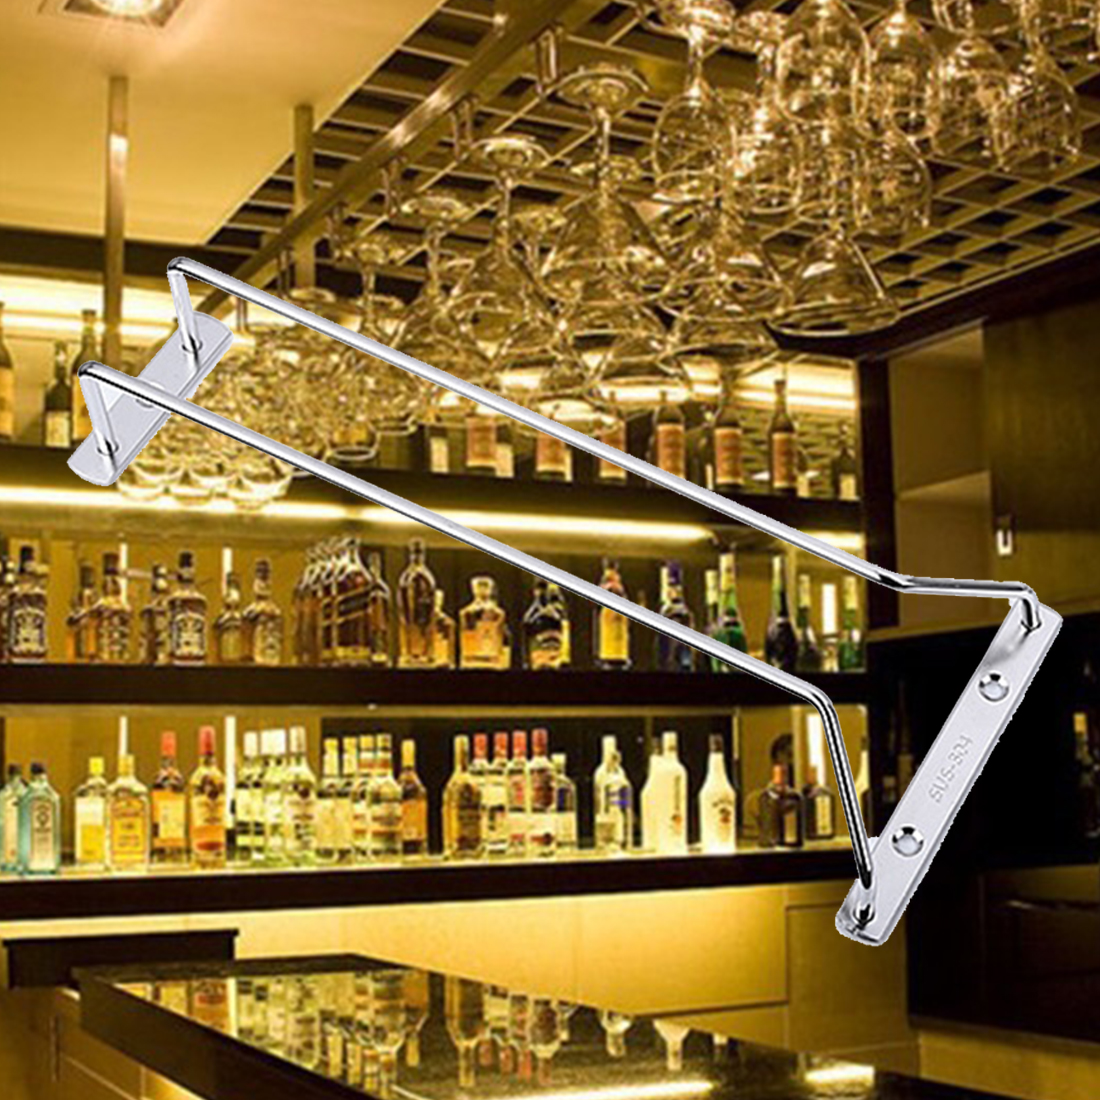 Compare prices on h bar steel  online shopping/buy low price h bar ...